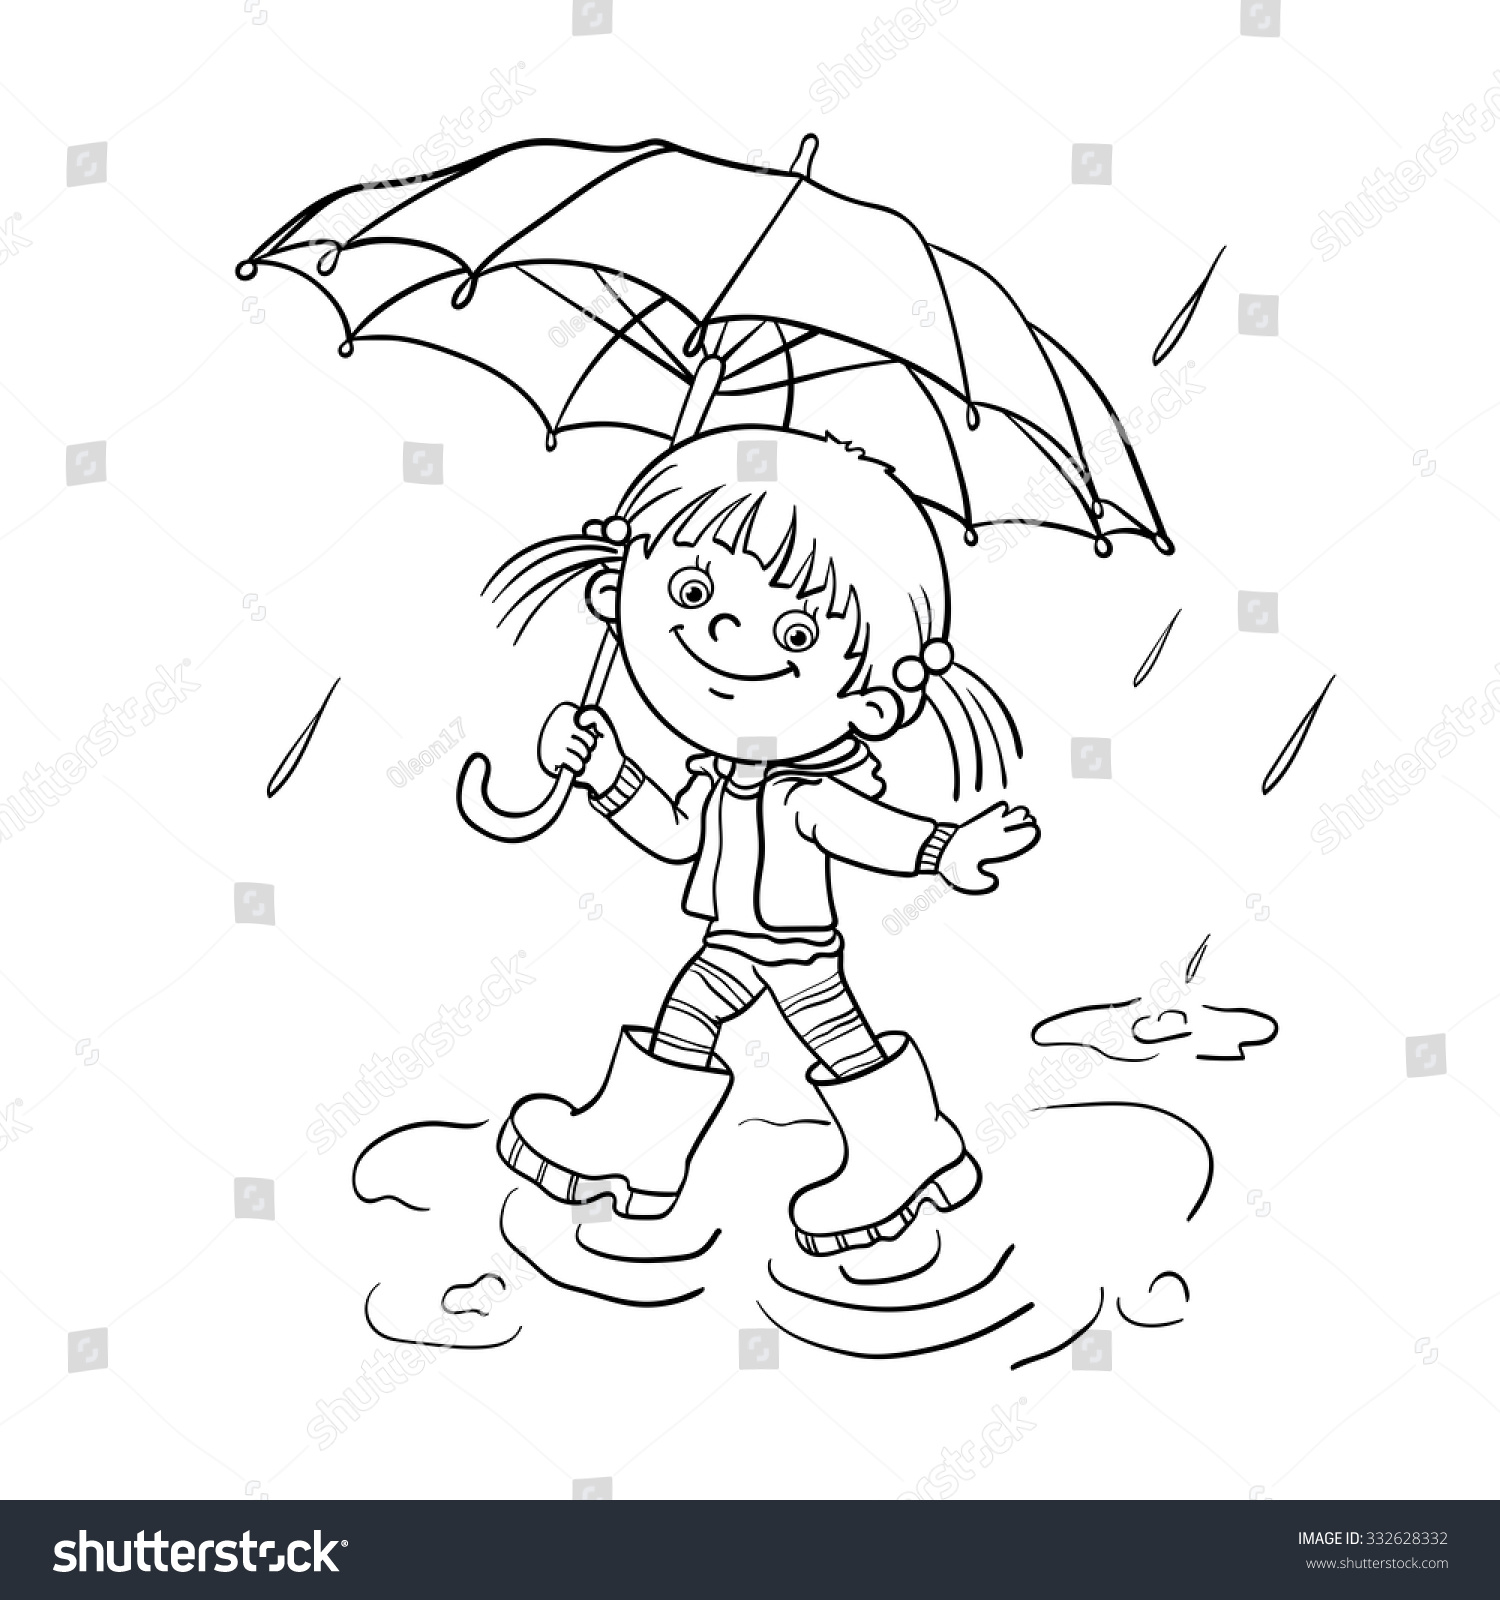 Free coloring pages rain - Free Coloring Pages Umbrella Coloring Page Outline Of A Cartoon Joyful Girl Walking In The